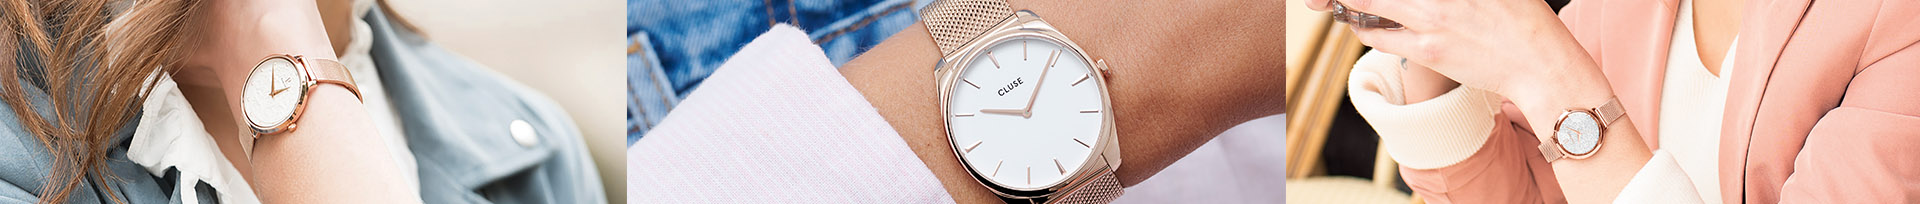 rose-gold-watches-category-banner1.jpg